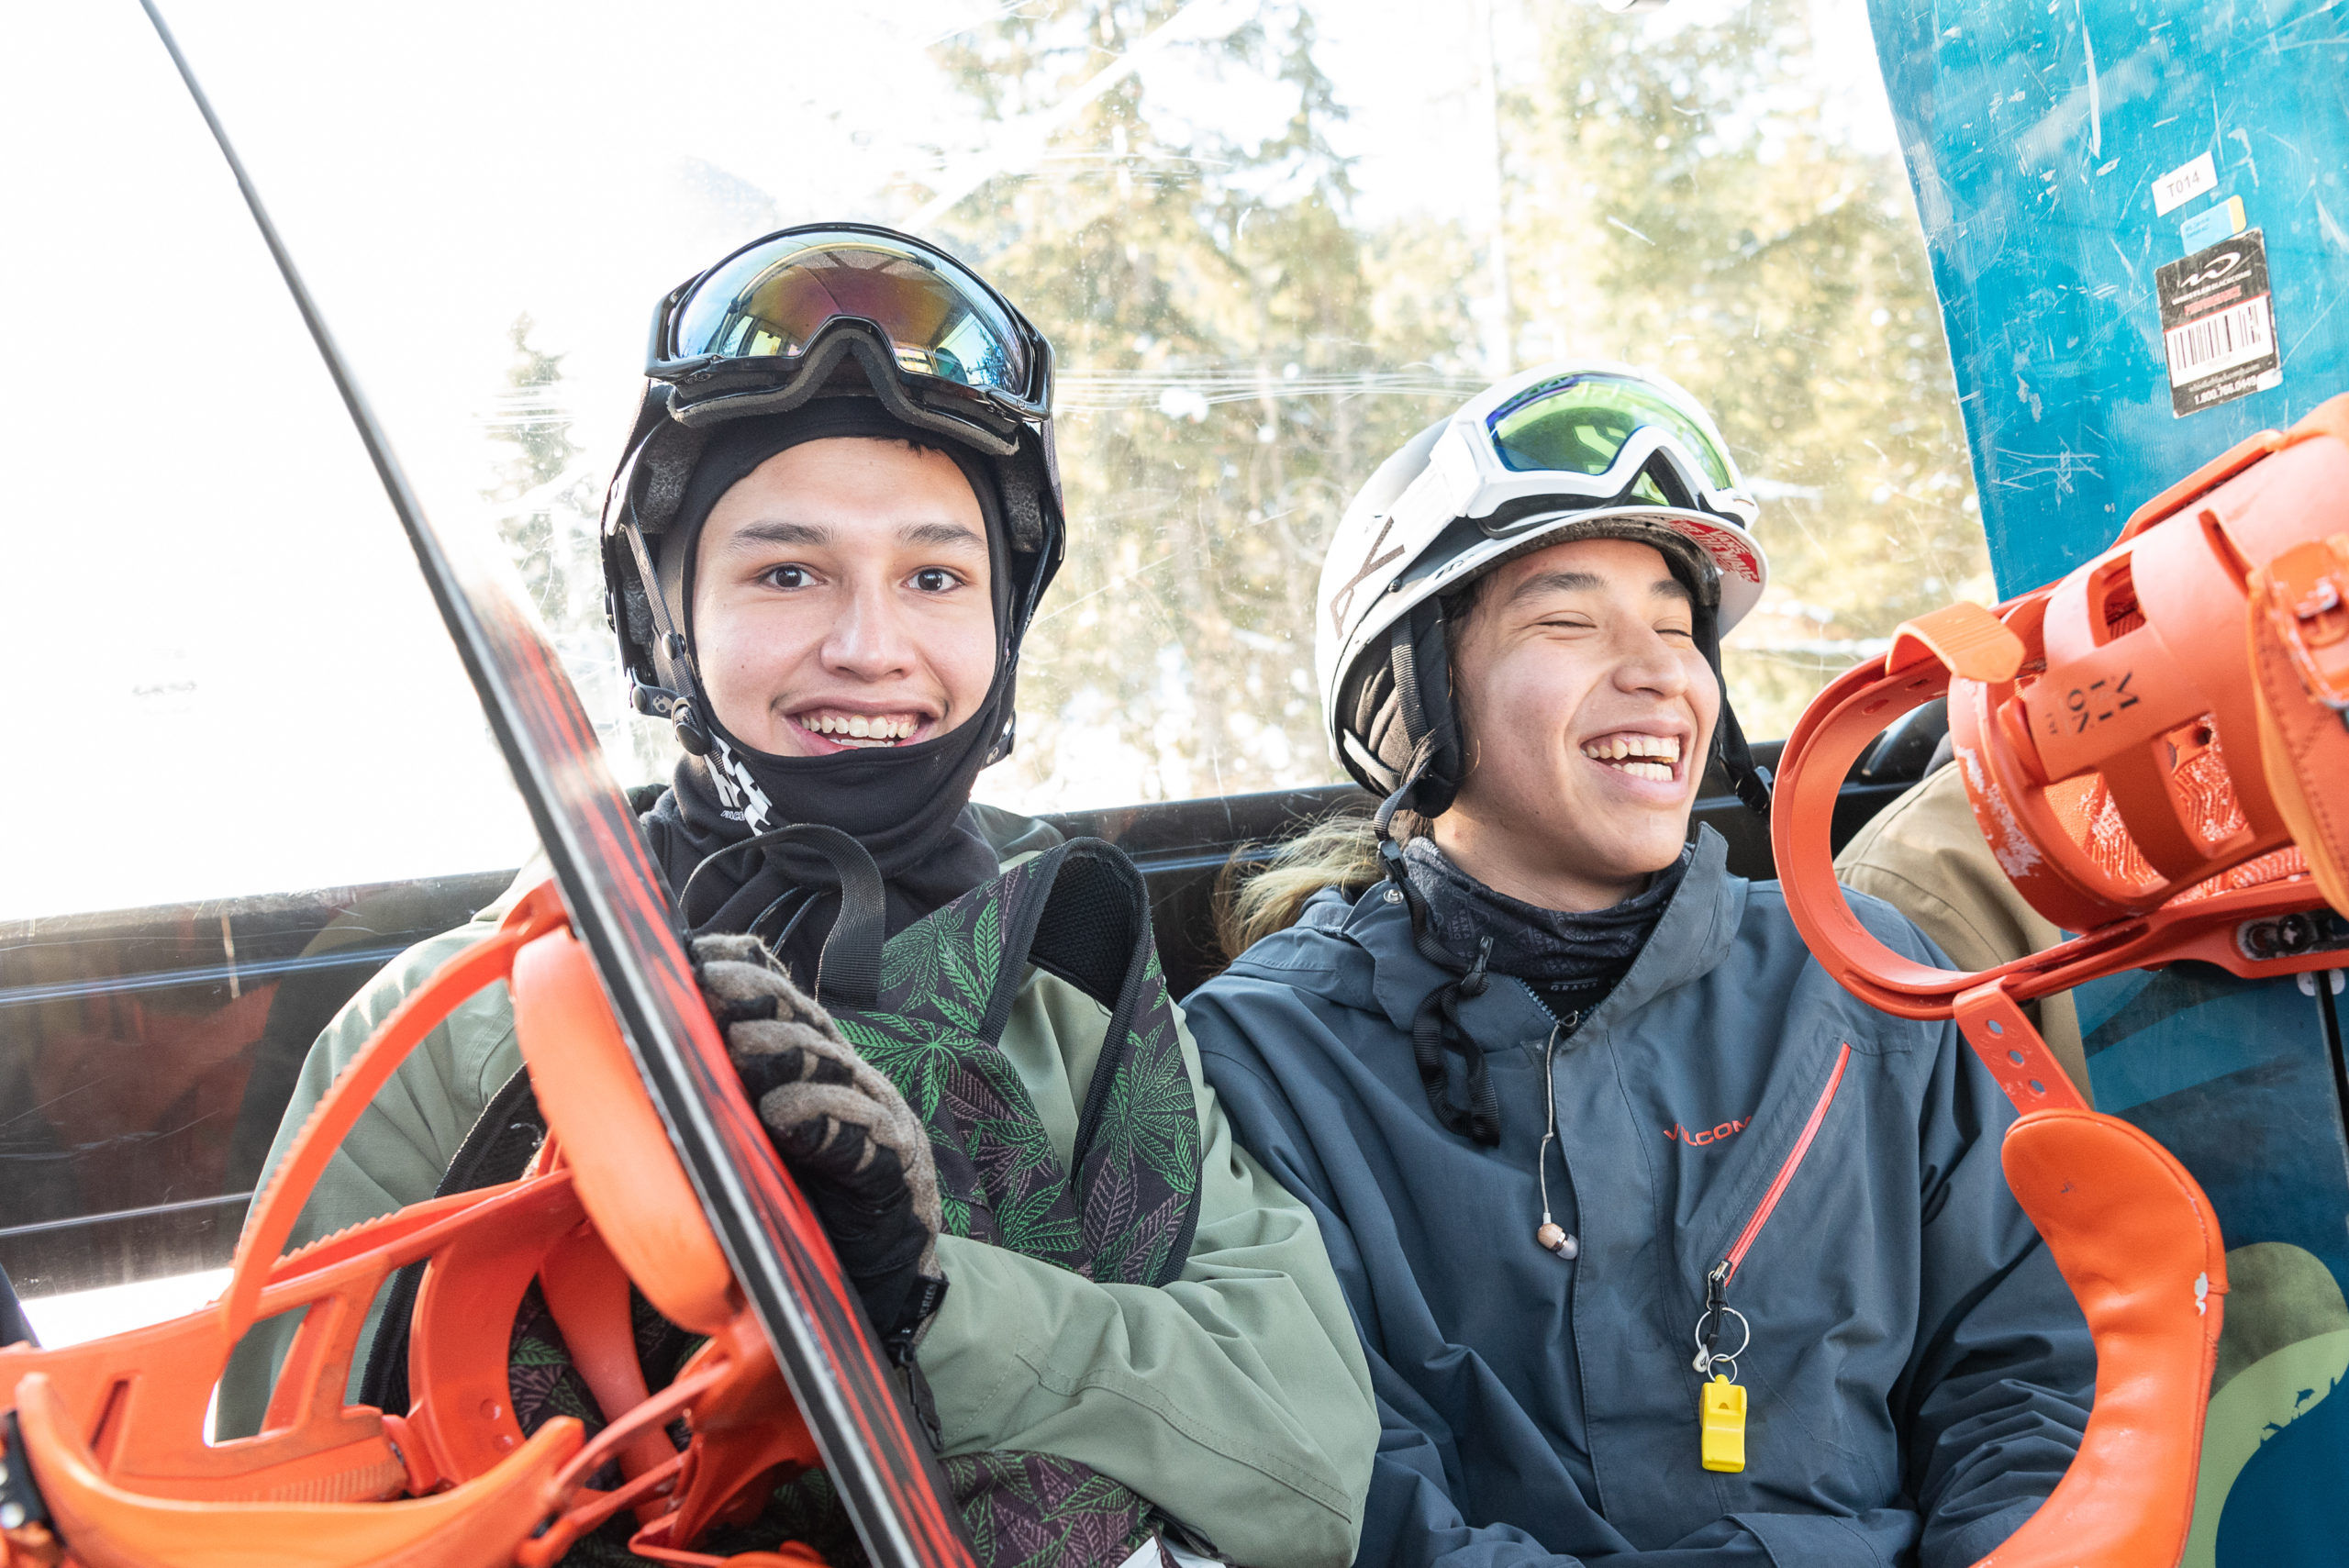 Close-up photograph of two young men in snowboard gear laughing